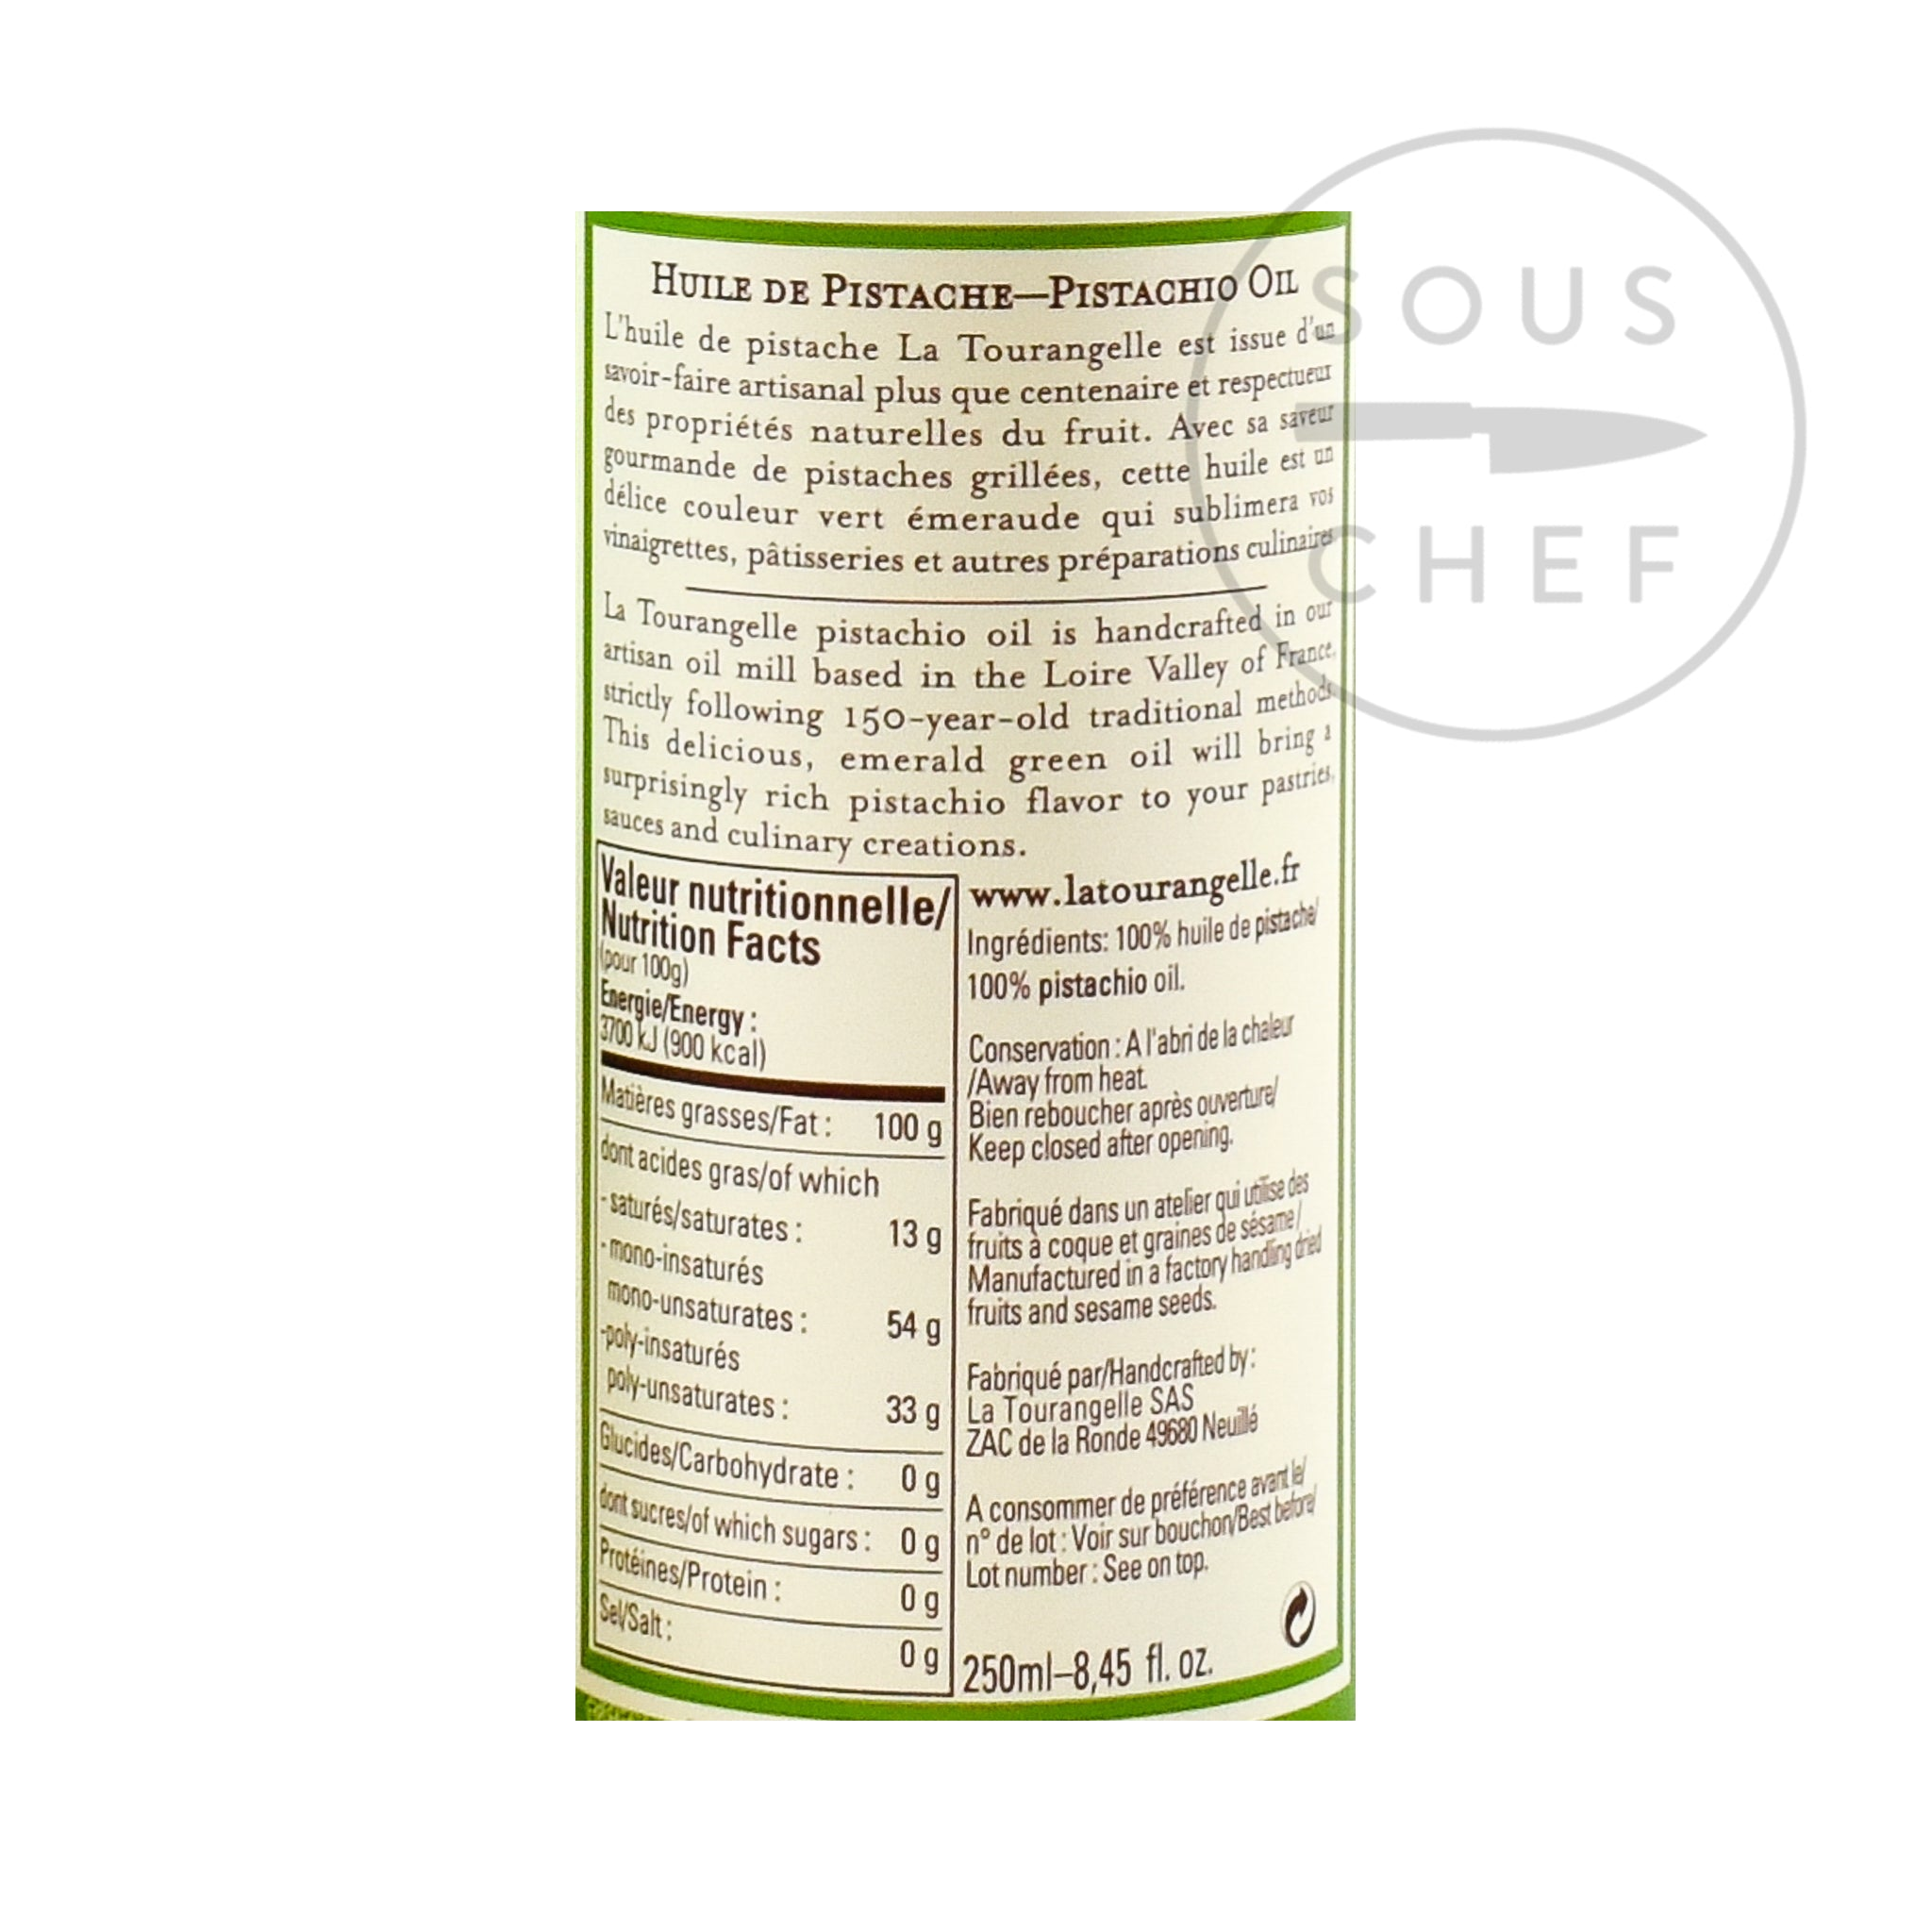 Pistachio Oil 250ml nutritional information ingredients